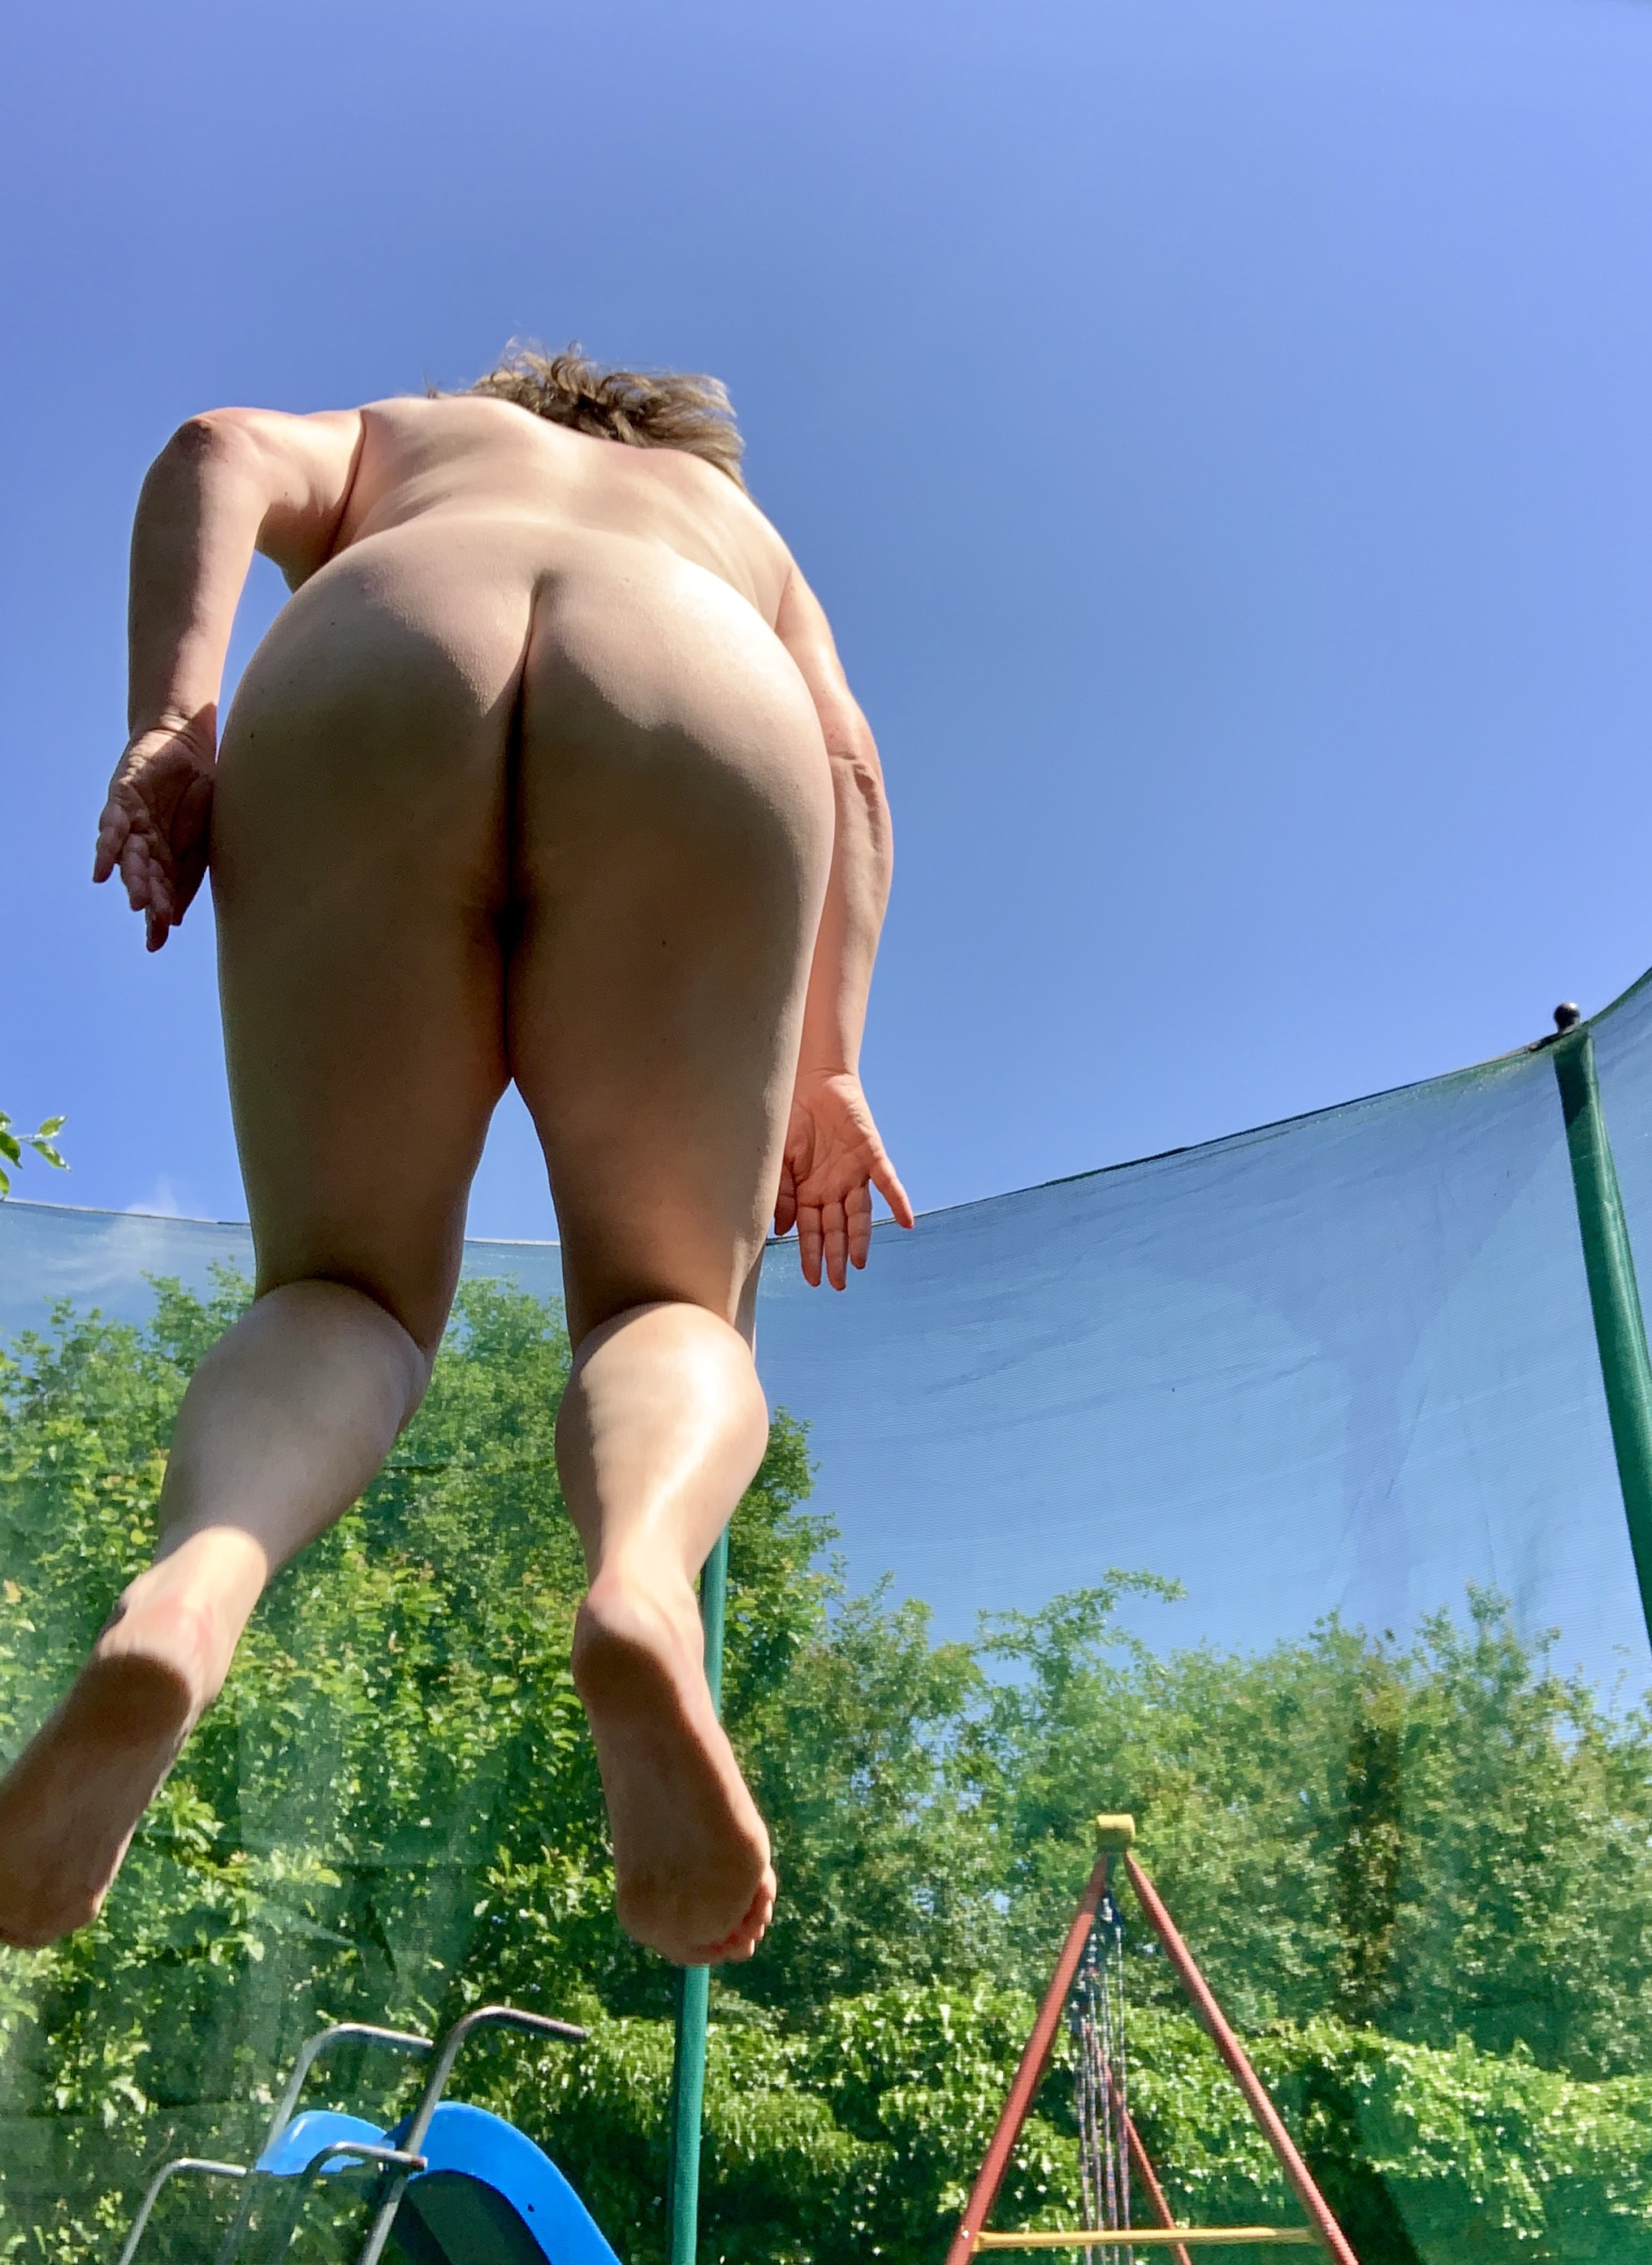 Videos of nude women on trampoline